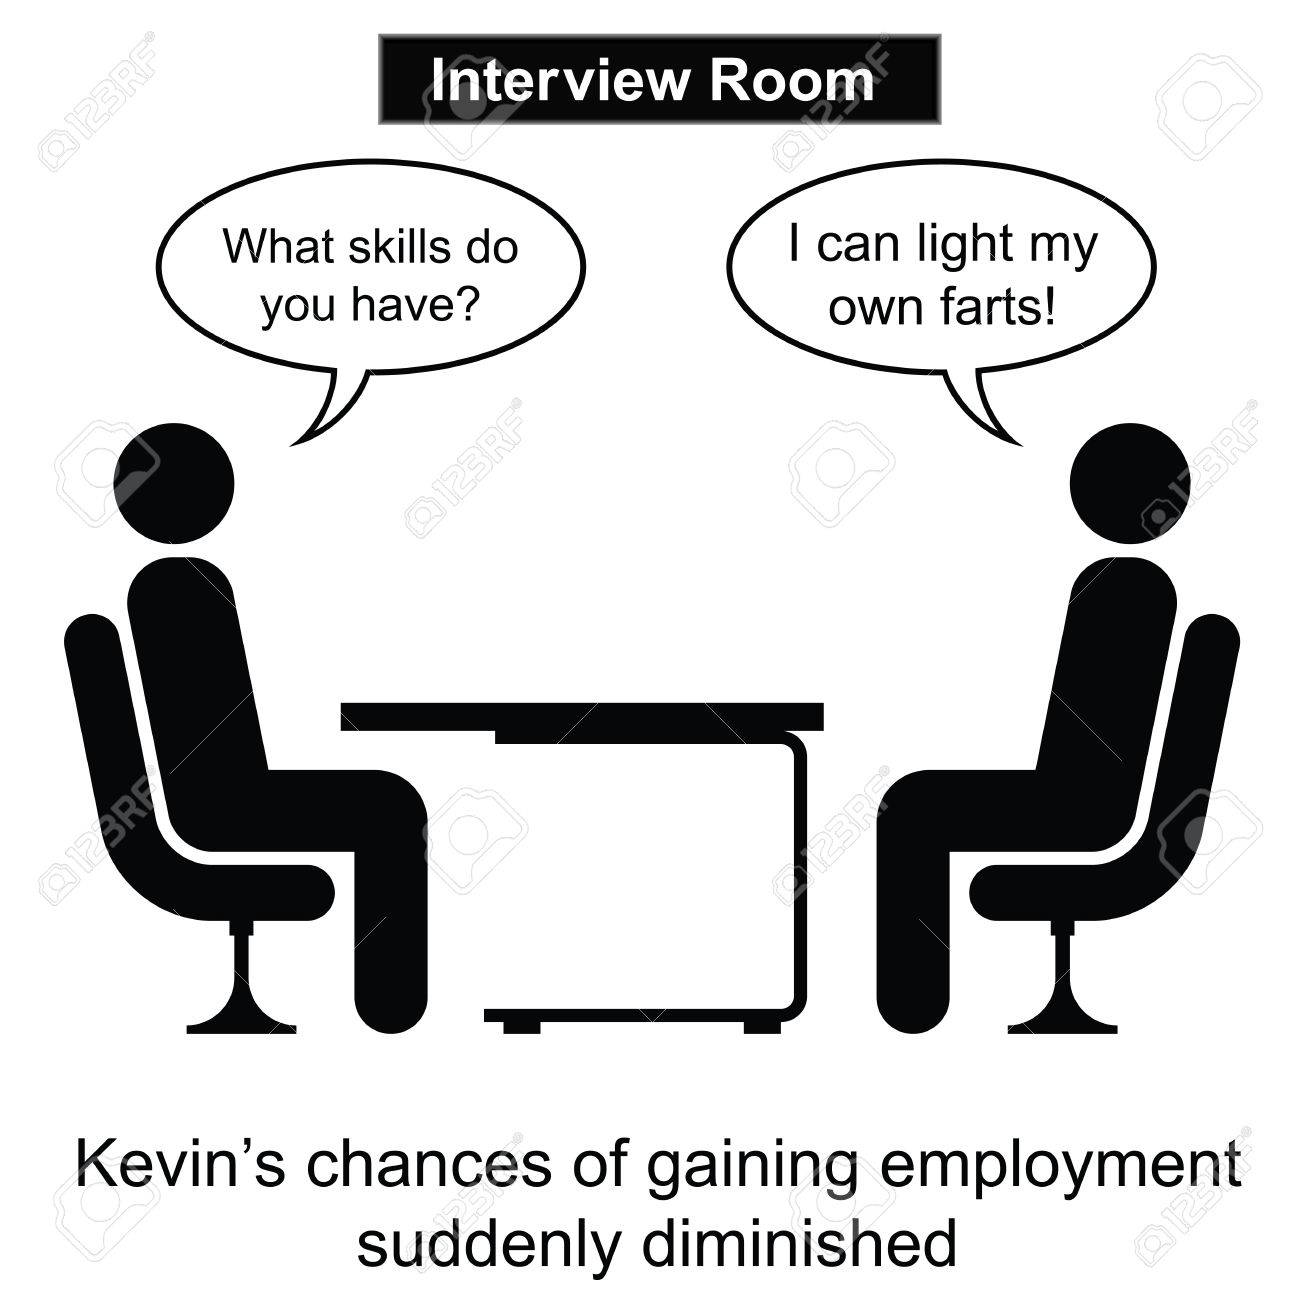 job interview cartoon stock photos pictures royalty job job interview cartoon kevin failed at yet another job interview cartoon isolated on white background